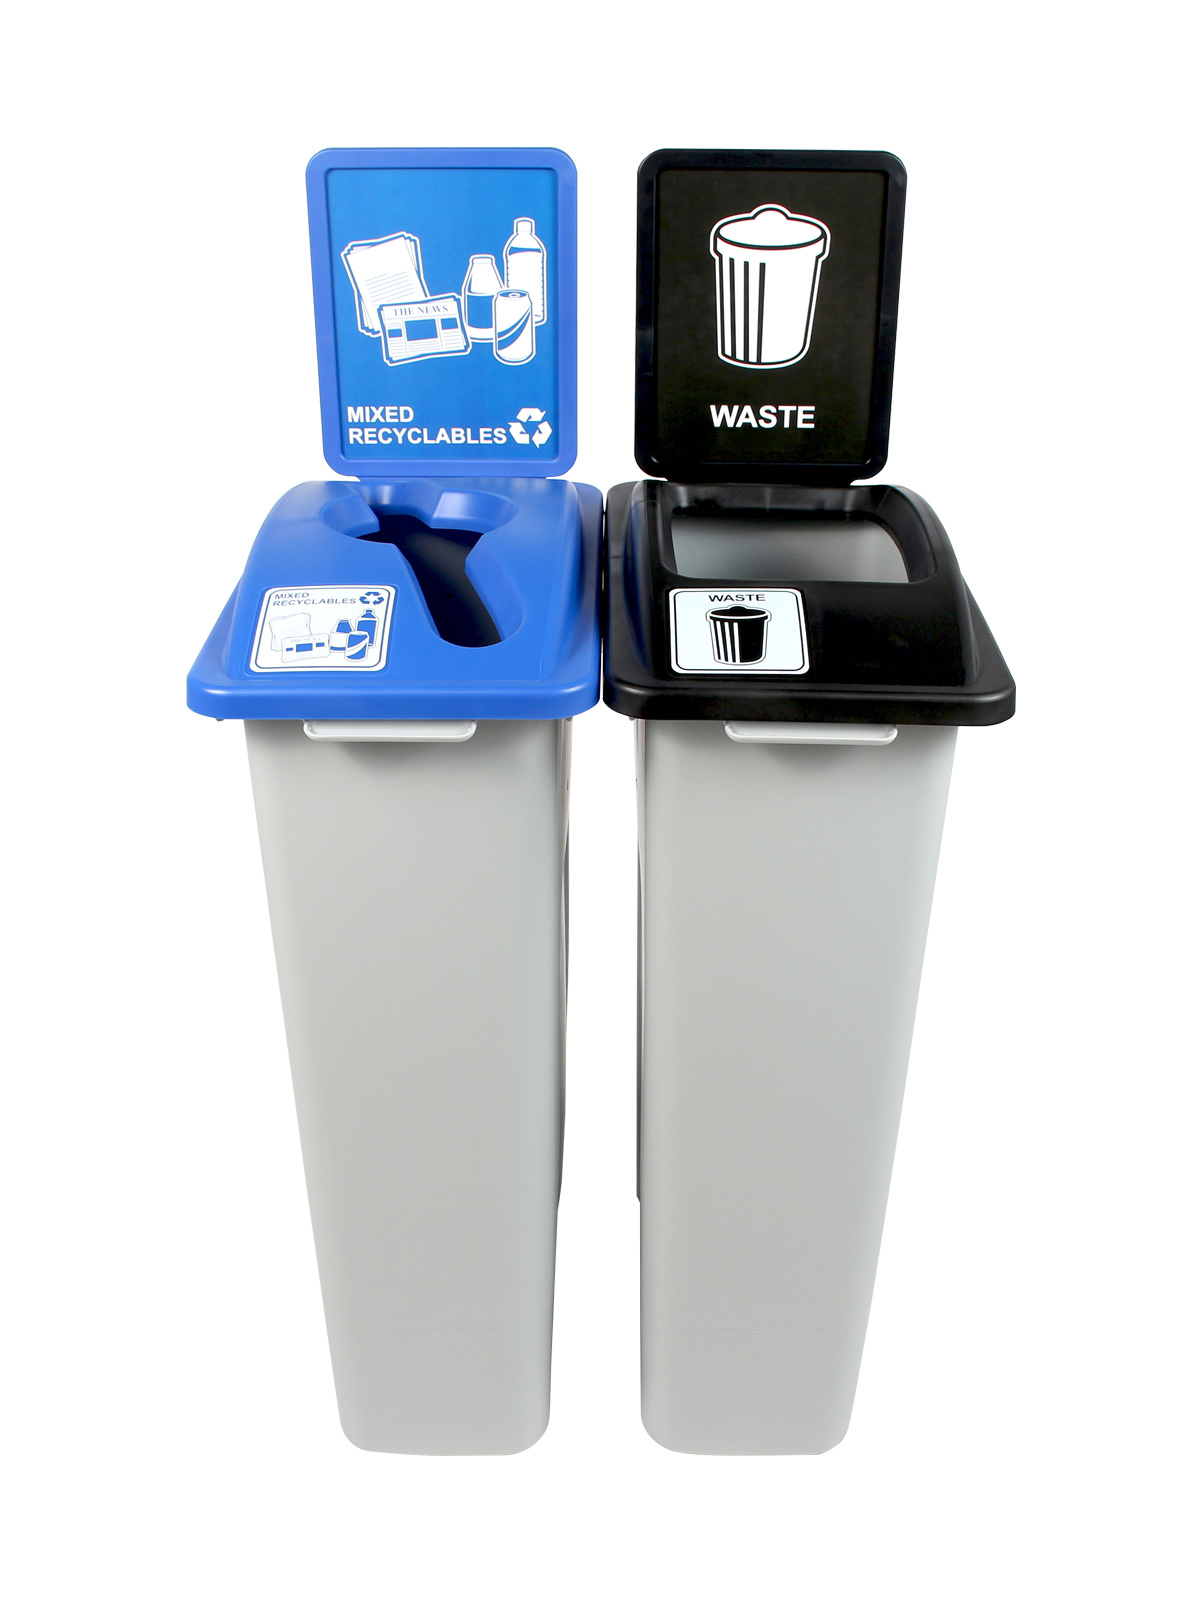 WASTE WATCHER - Double - Maryland Compliant - Mixed Recyclables-Waste - Mixed-Full - Grey-Blue-Black title=